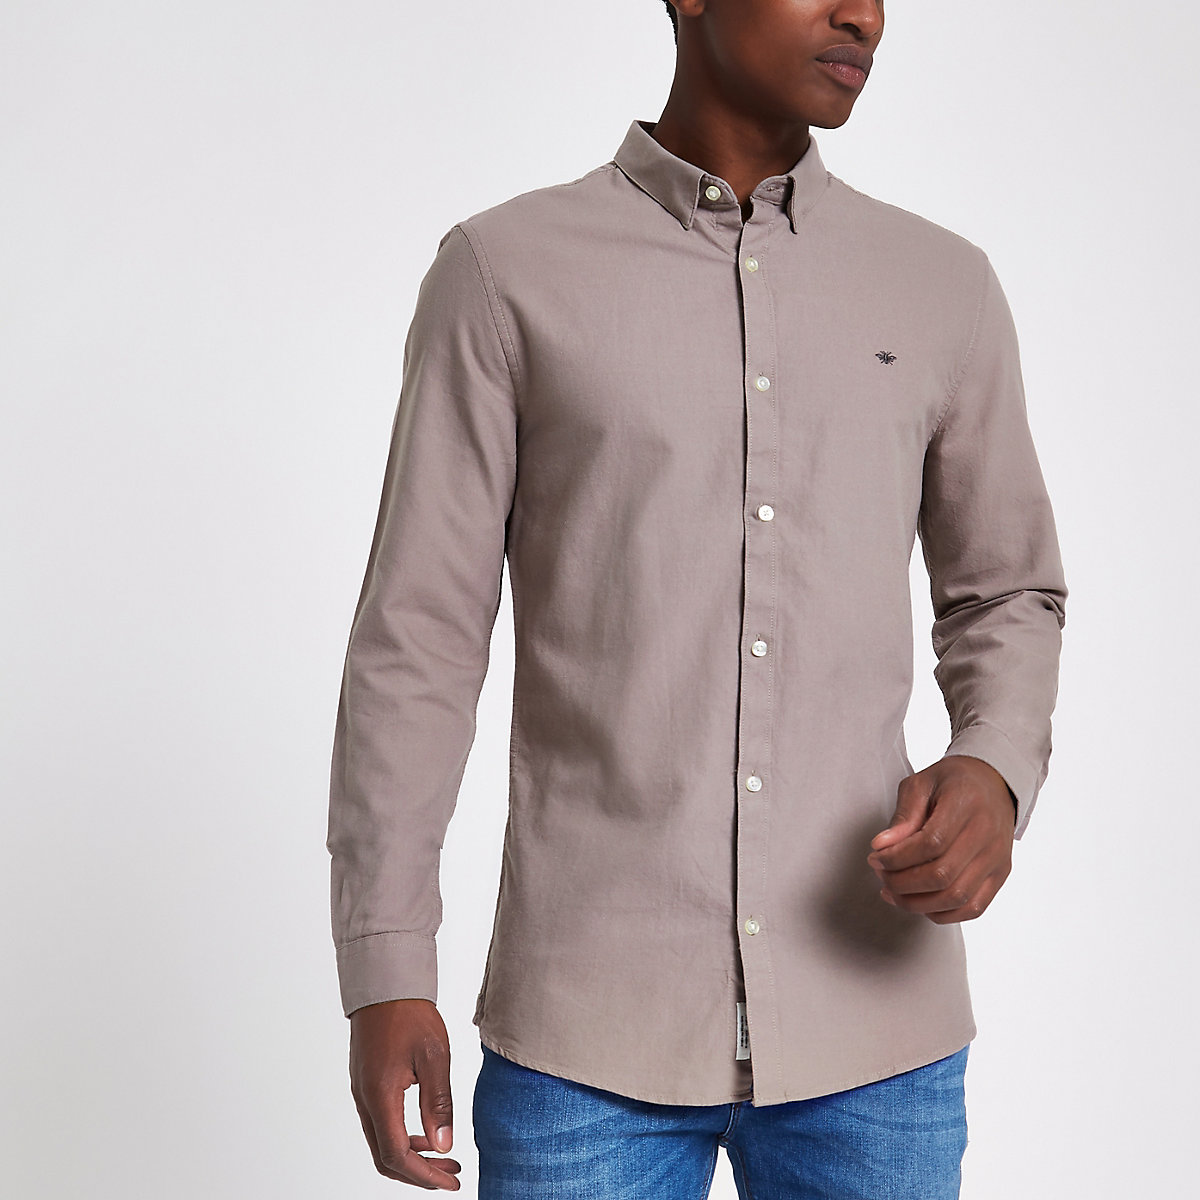 Light brown wasp embroidered Oxford shirt